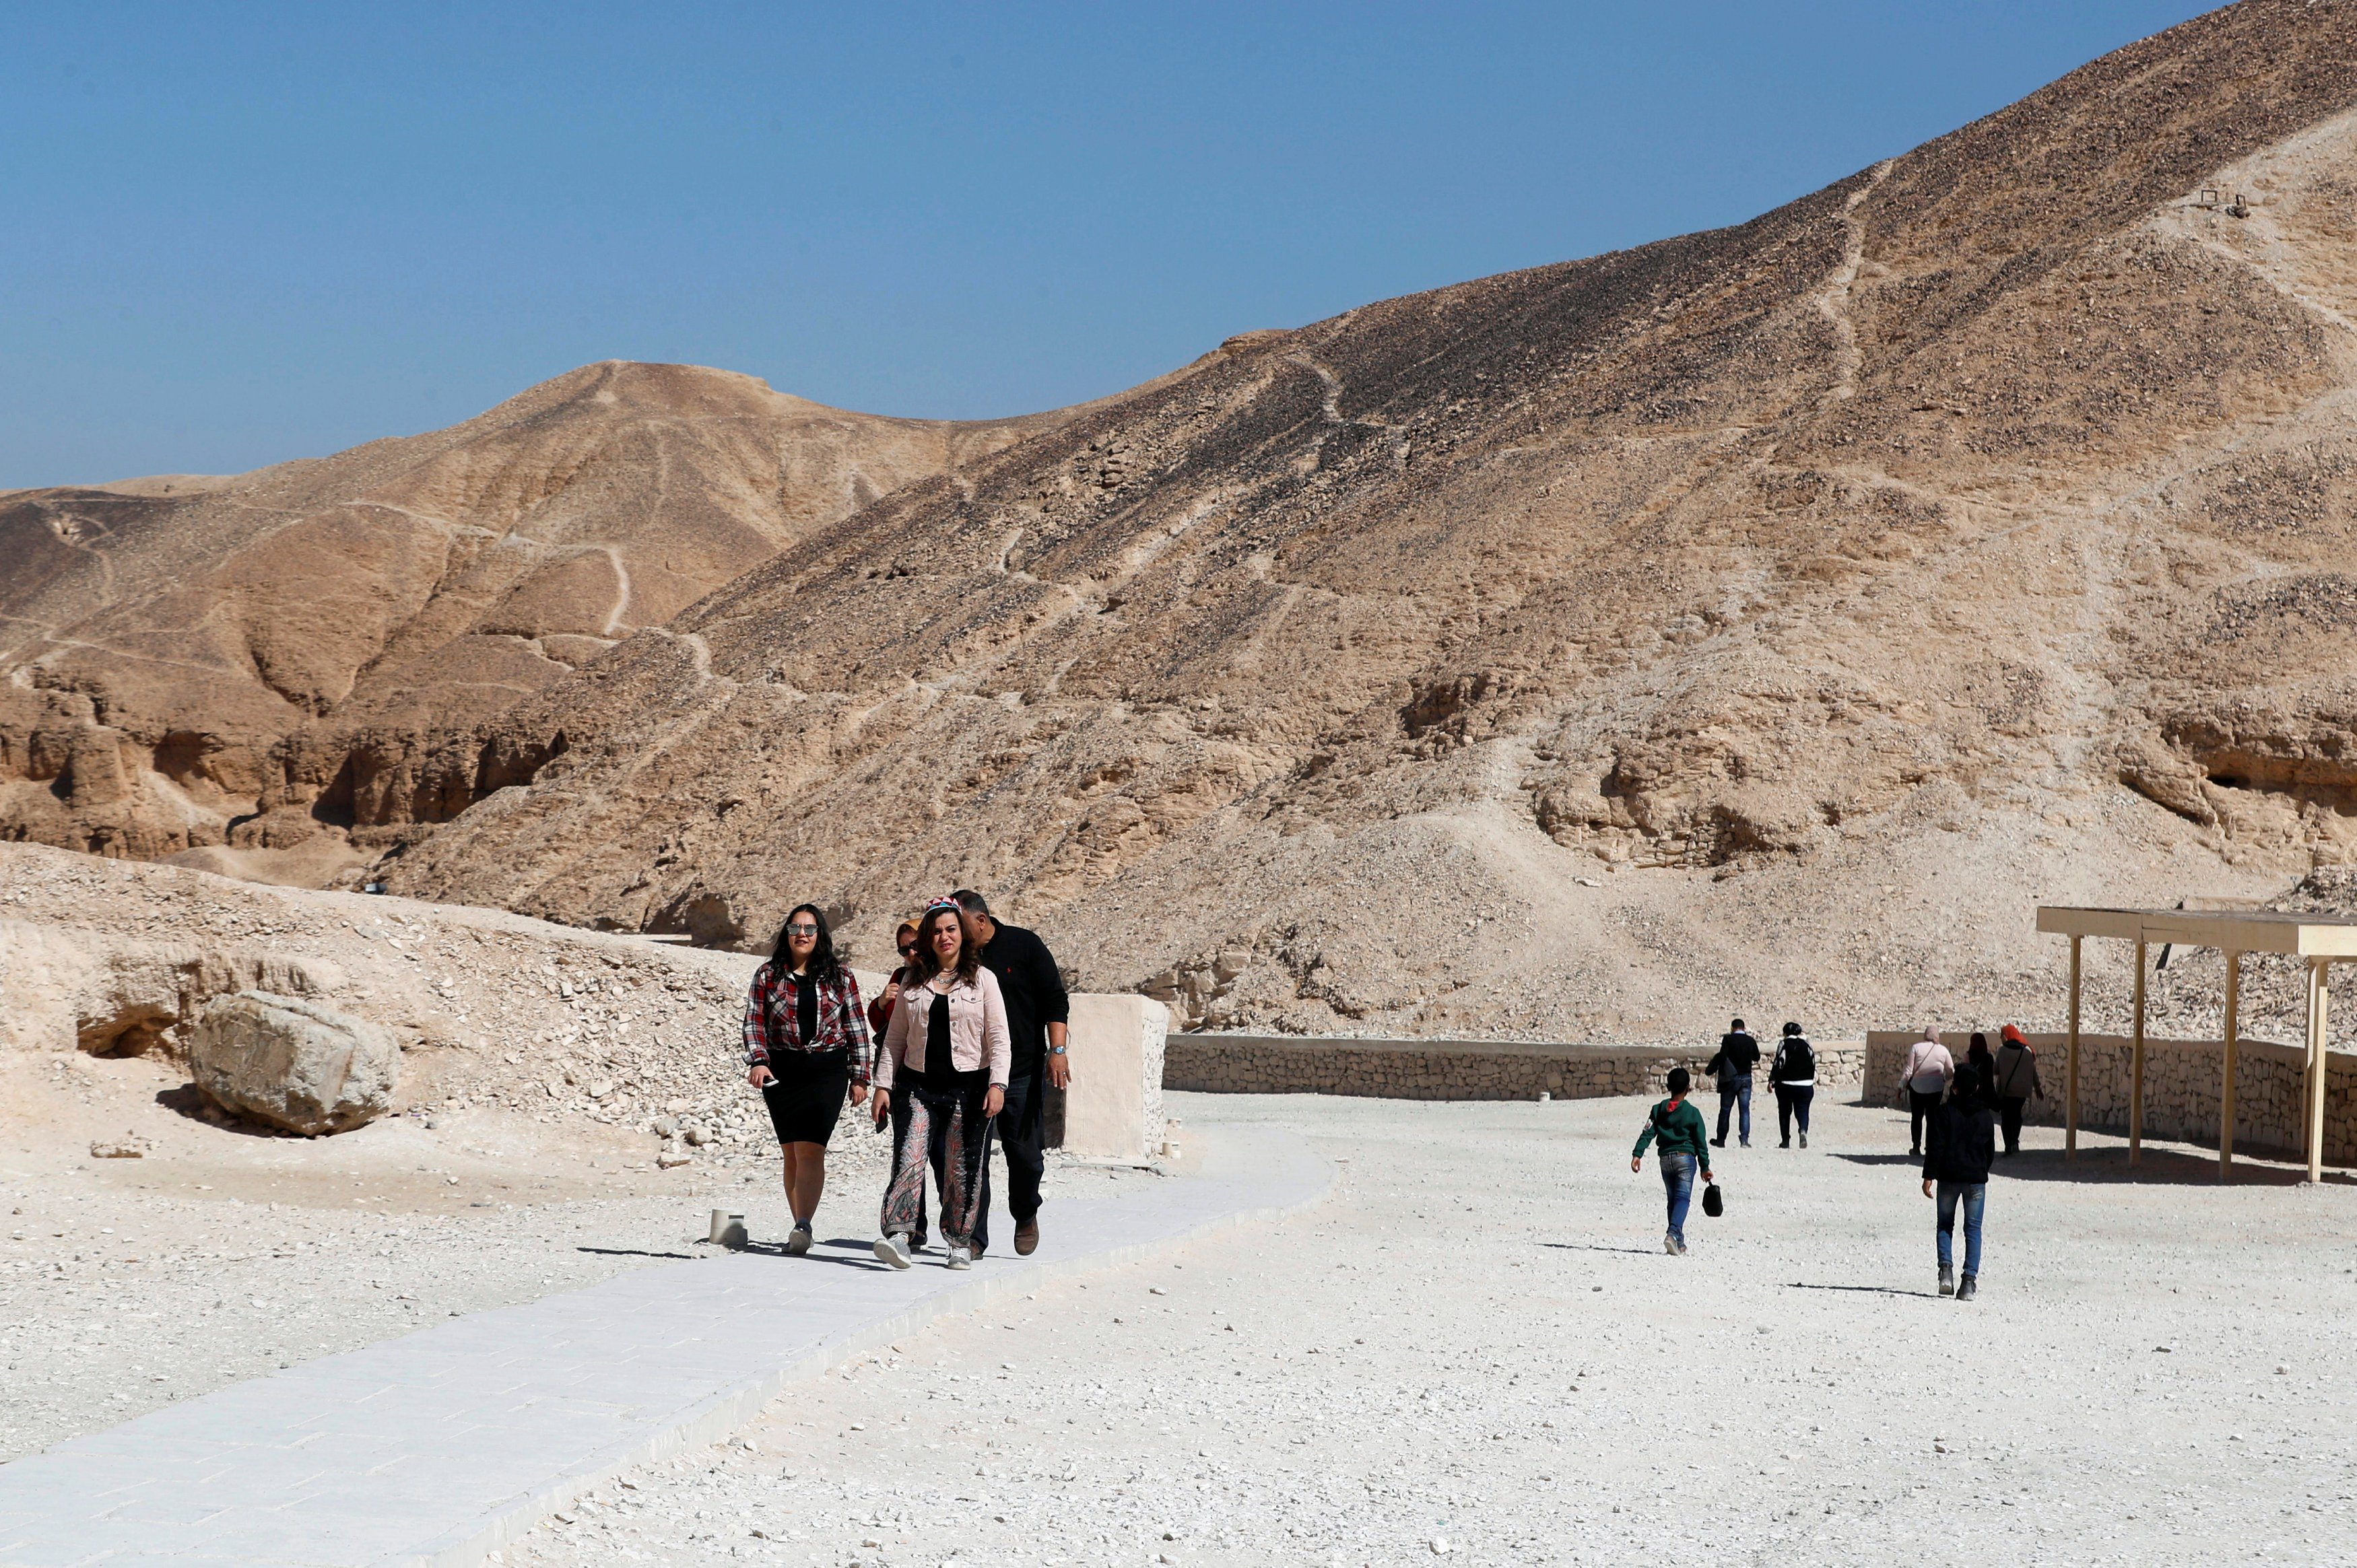 The tomb is located in the Valley of The Kings in Luxor, on the west bank of the Nile and around 200 miles upriver from Cairo. The first tombs date back to around 1600 BC: female consorts were usually buried nearby in the Valley of the Queens (Reuters).